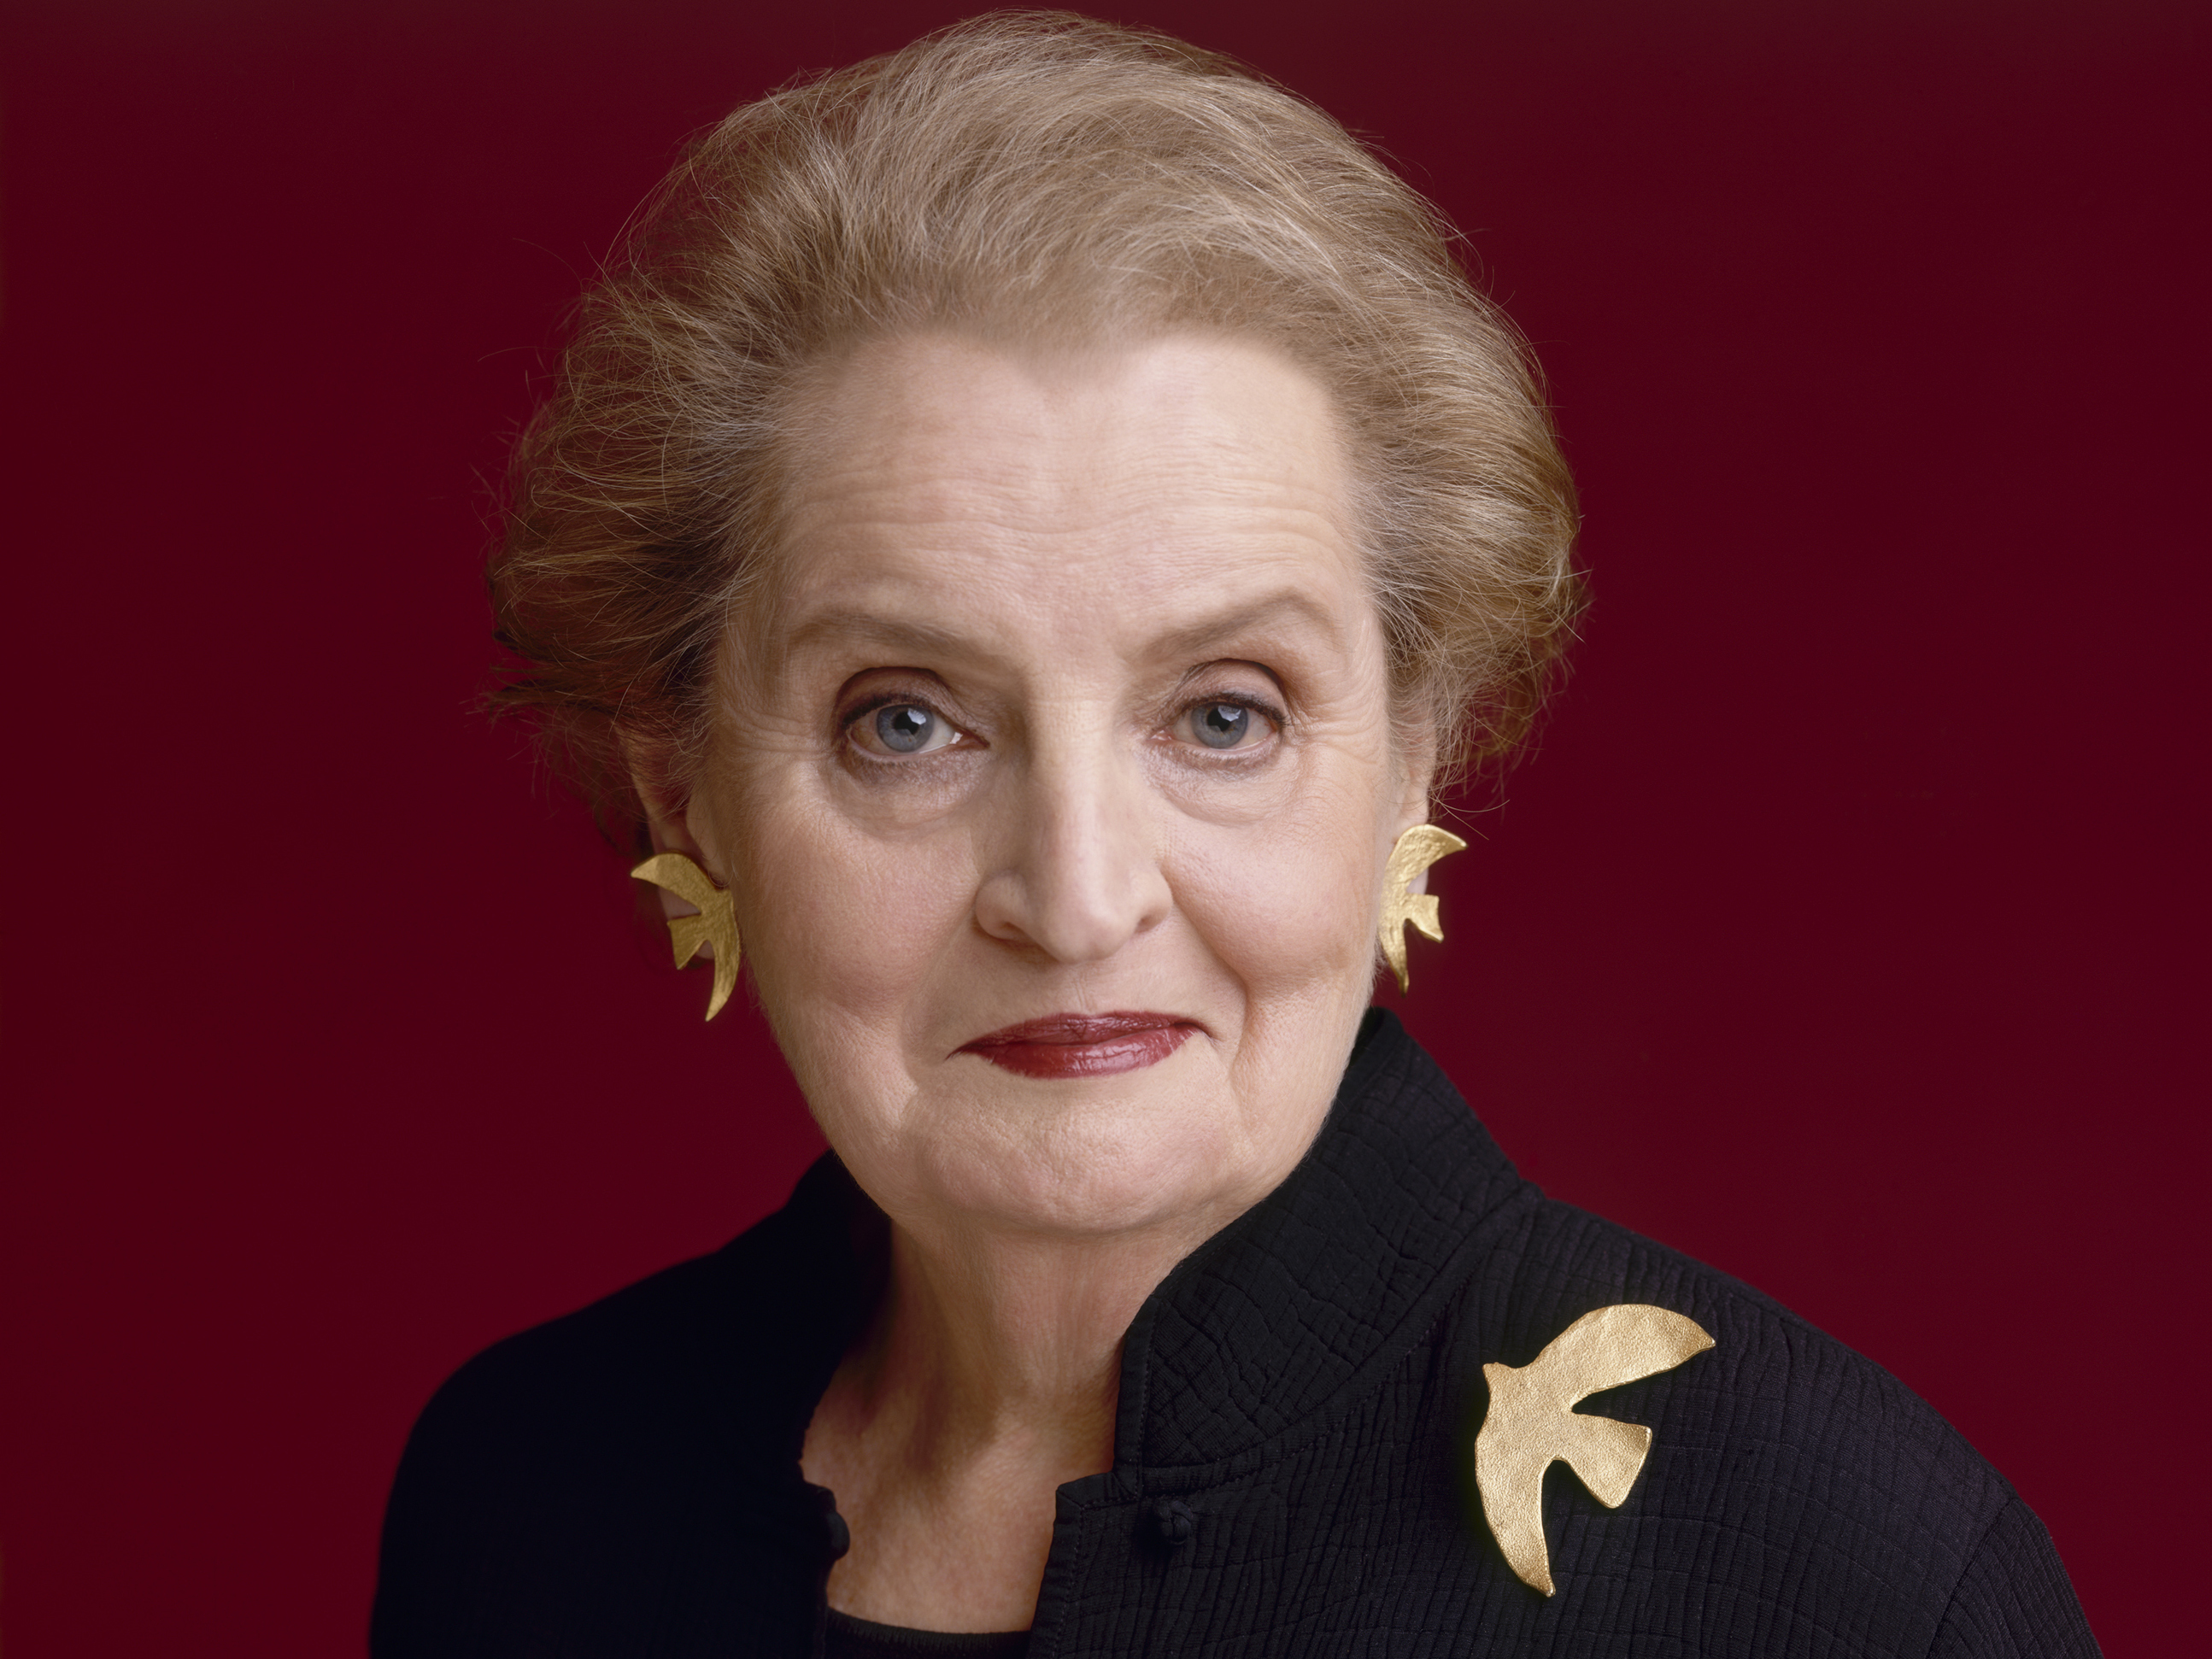 madeleine-albright-photo-credit-timothy-greenfield-sanders